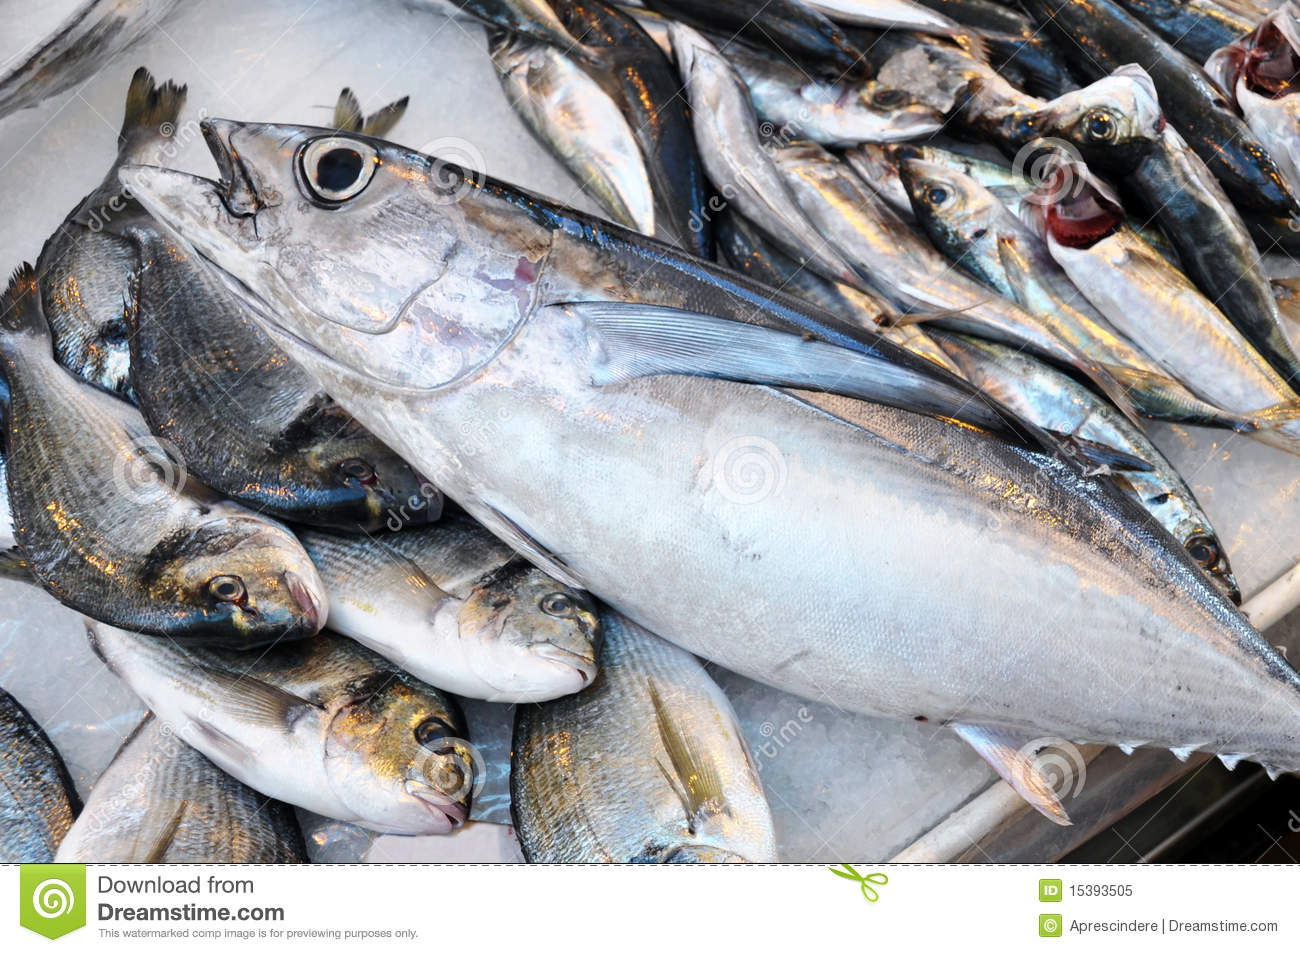 Fresh fish the tuna stock image image of eyes animal for Is tuna fish good for you